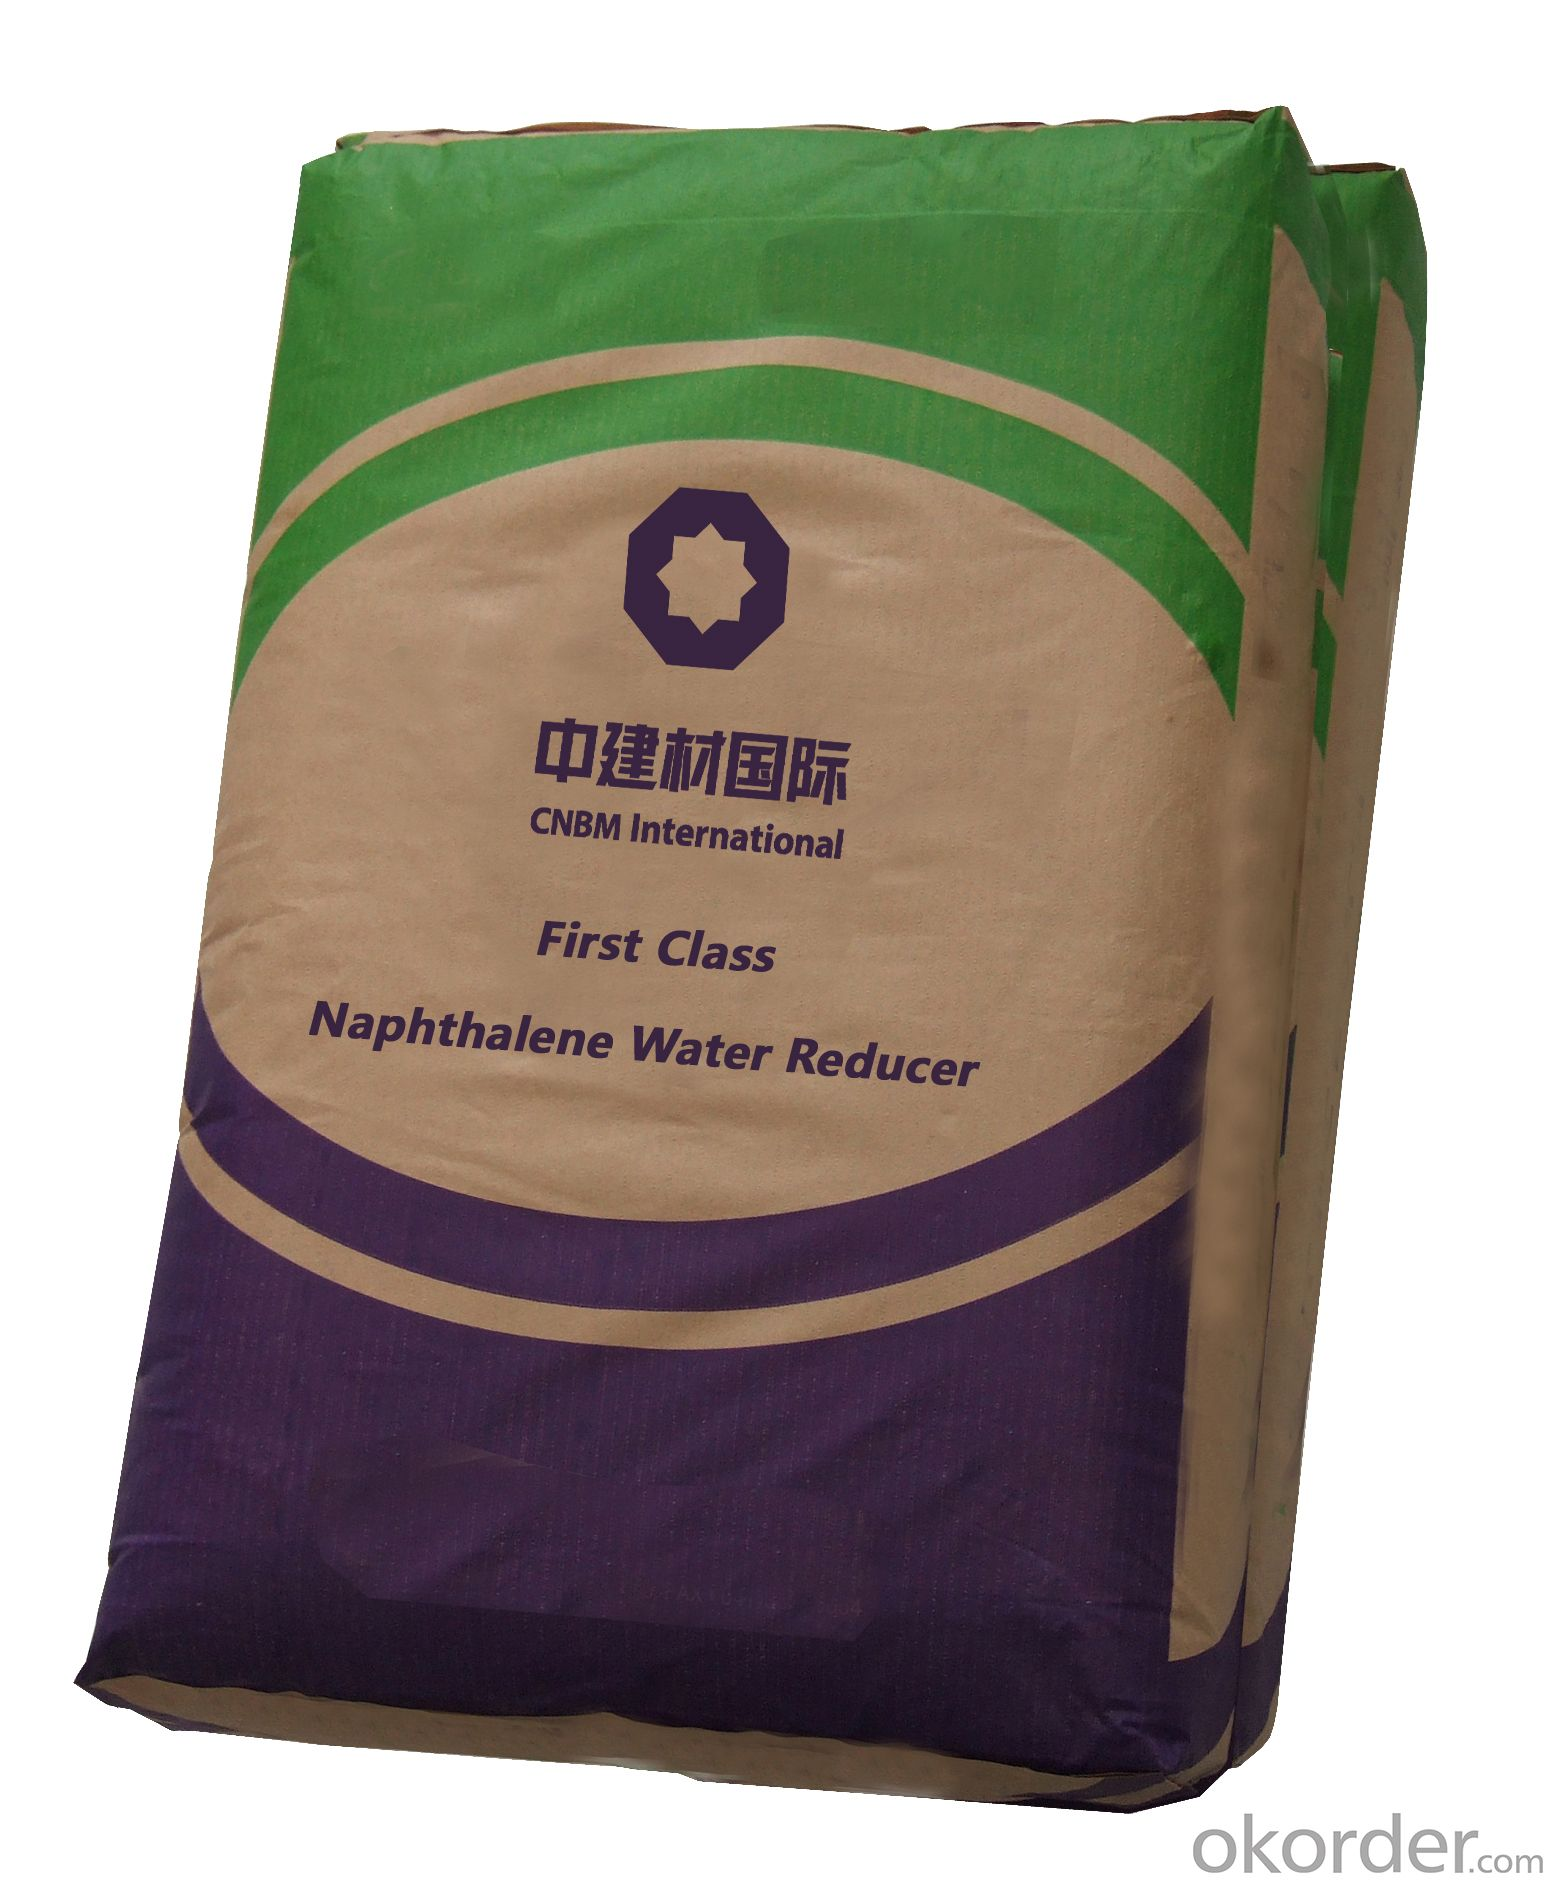 Naphthalene Sulfonate Formaldehyde Powder Water Reducer